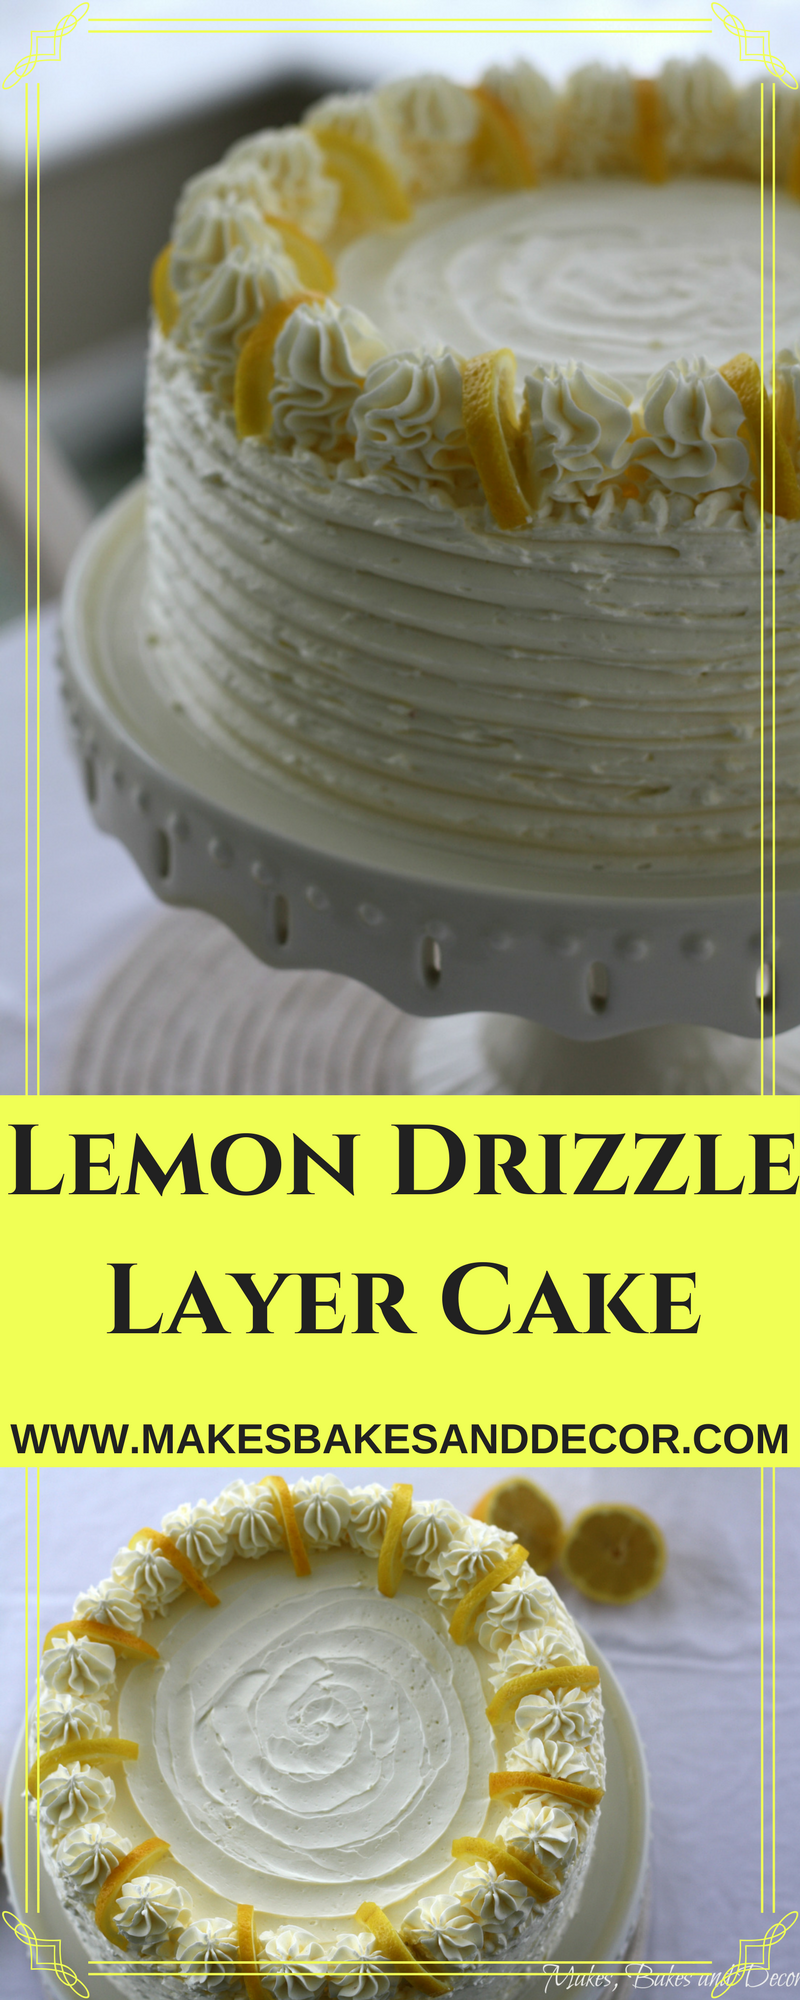 Lemon drizzle layer cake makes bakes and decor for Decoration layer cake